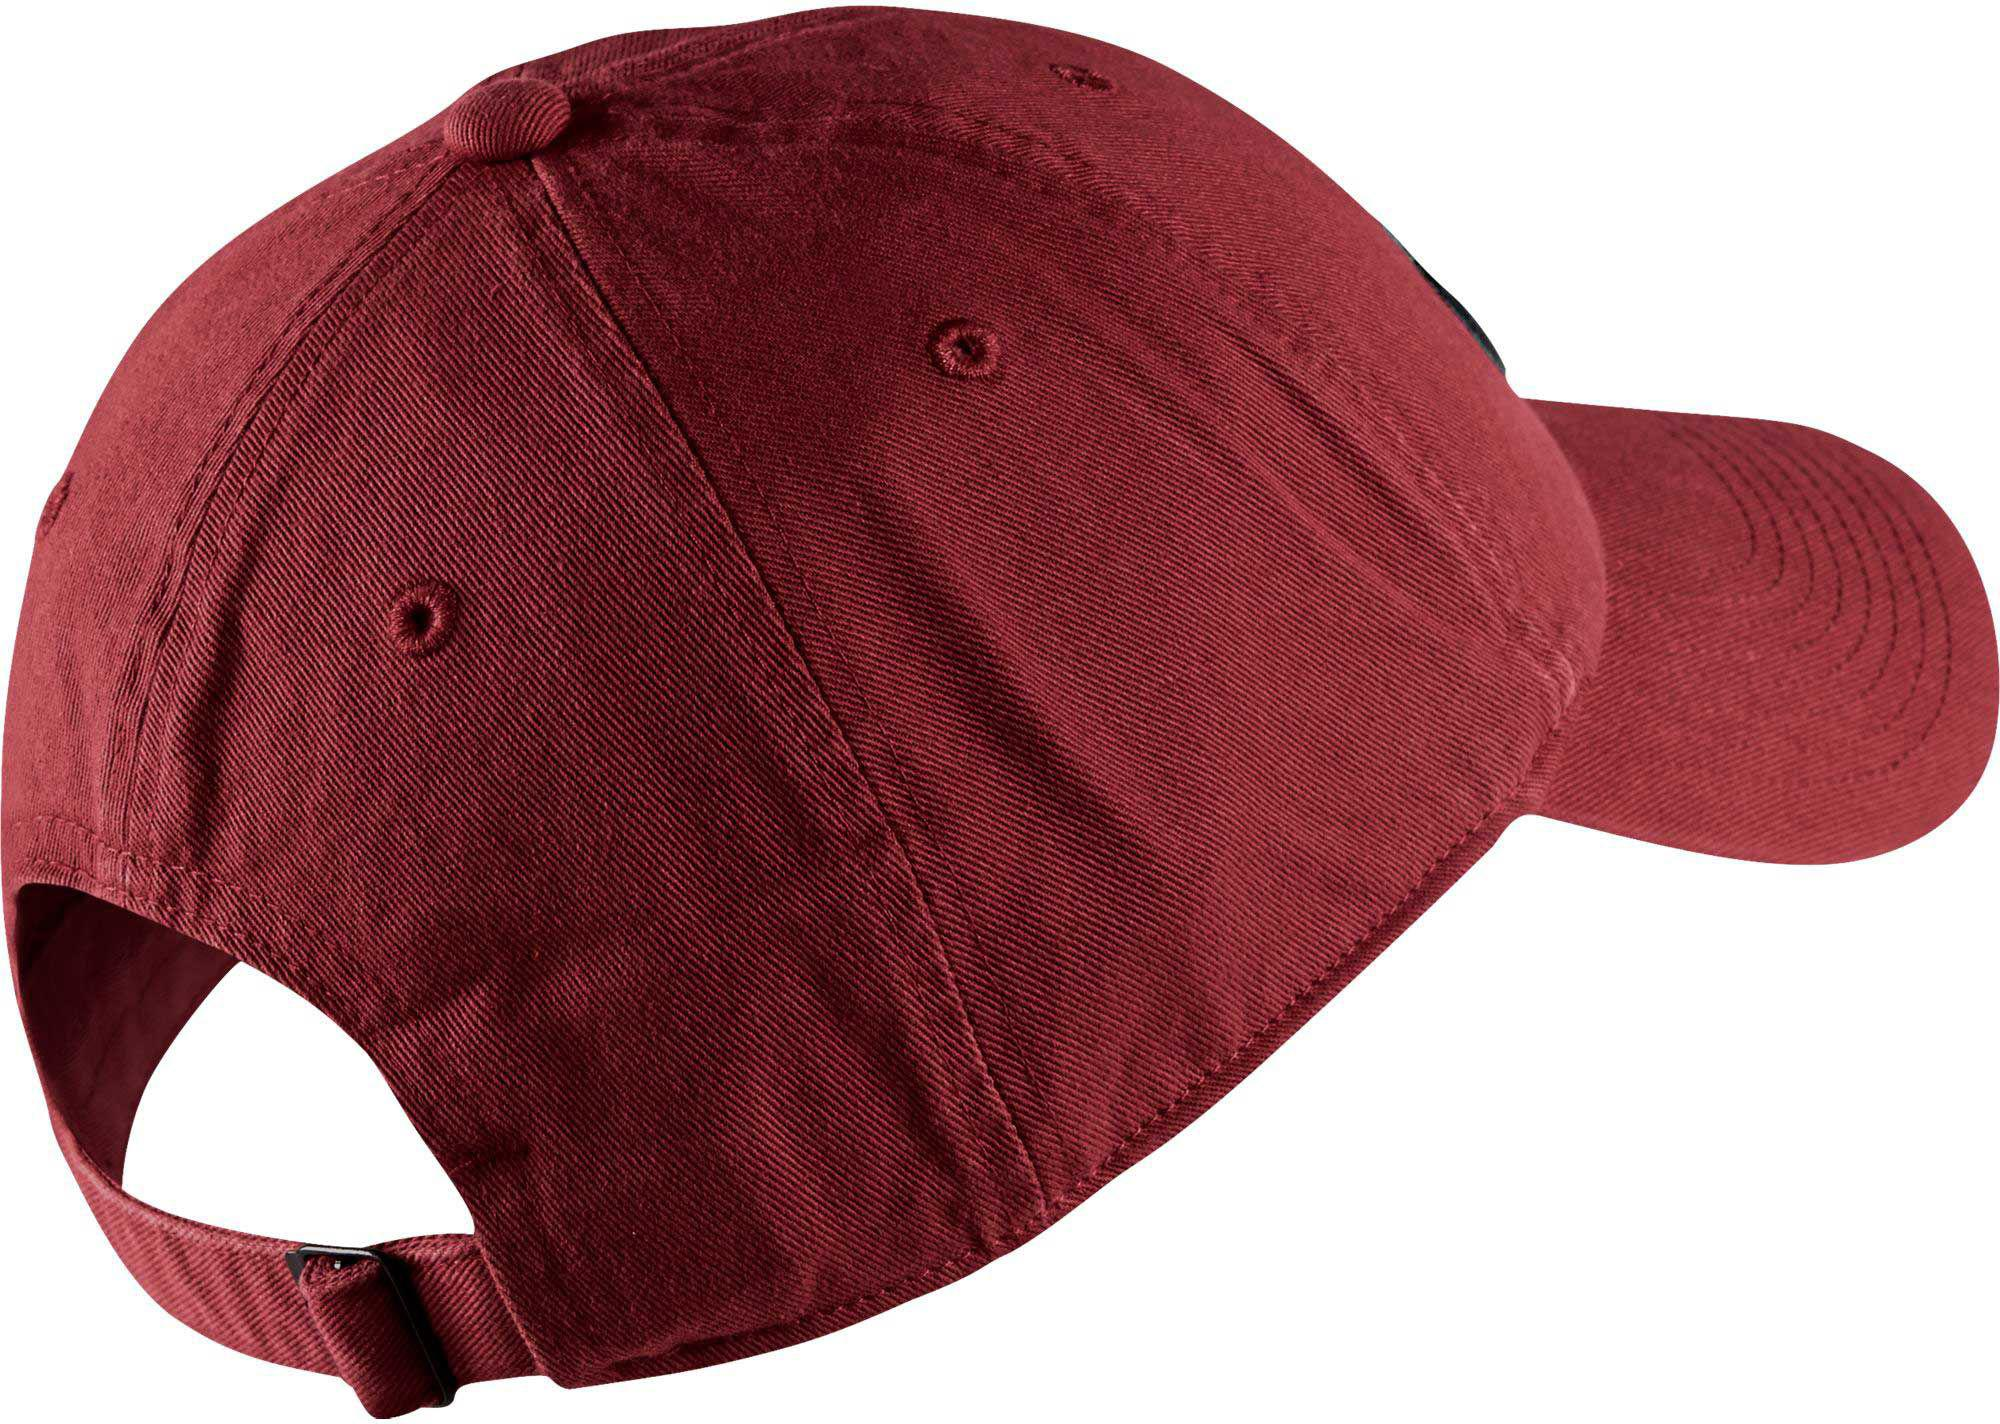 Lyst - Nike Heritage 86 Futura Adjustable Hat in Red for Men a7bf0598faea